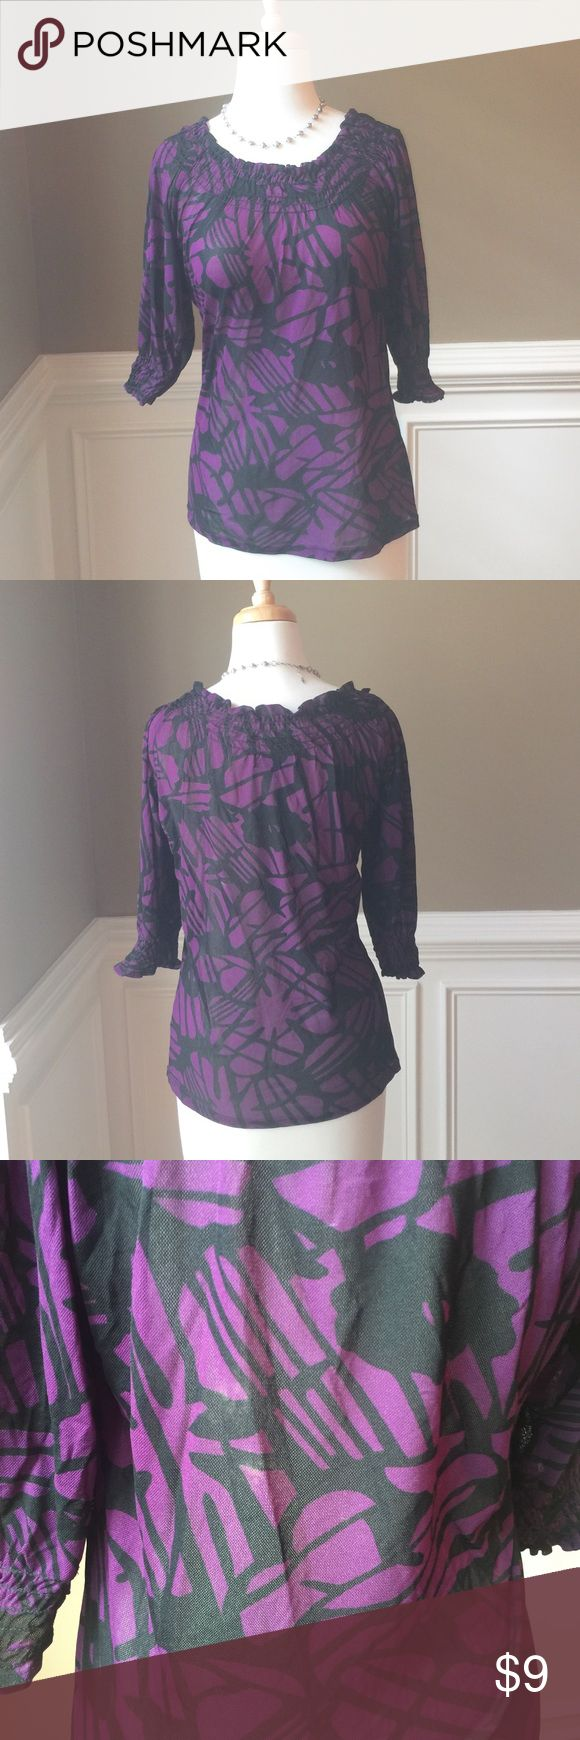 "🍂New🍂 Karen Kane sheer purple top Pretty semi-sheer top from Karen Kane. Vibrant purple with black floral pattern. Smocked neck and sleeve cuffs. You can wear it off-shoulder as well. Possible slight variation in color, I'm not sure if that's now it came. See pic 3. Otherwise no flaws or blemishes. No rips or odors. Smoke and pet free home. Approx 15"" across bust, 22.5"" long, 12"" sleeves. I cut out large white fabric tag b/c it was so easily visible through fabric. Karen Kane Tops Tees…"